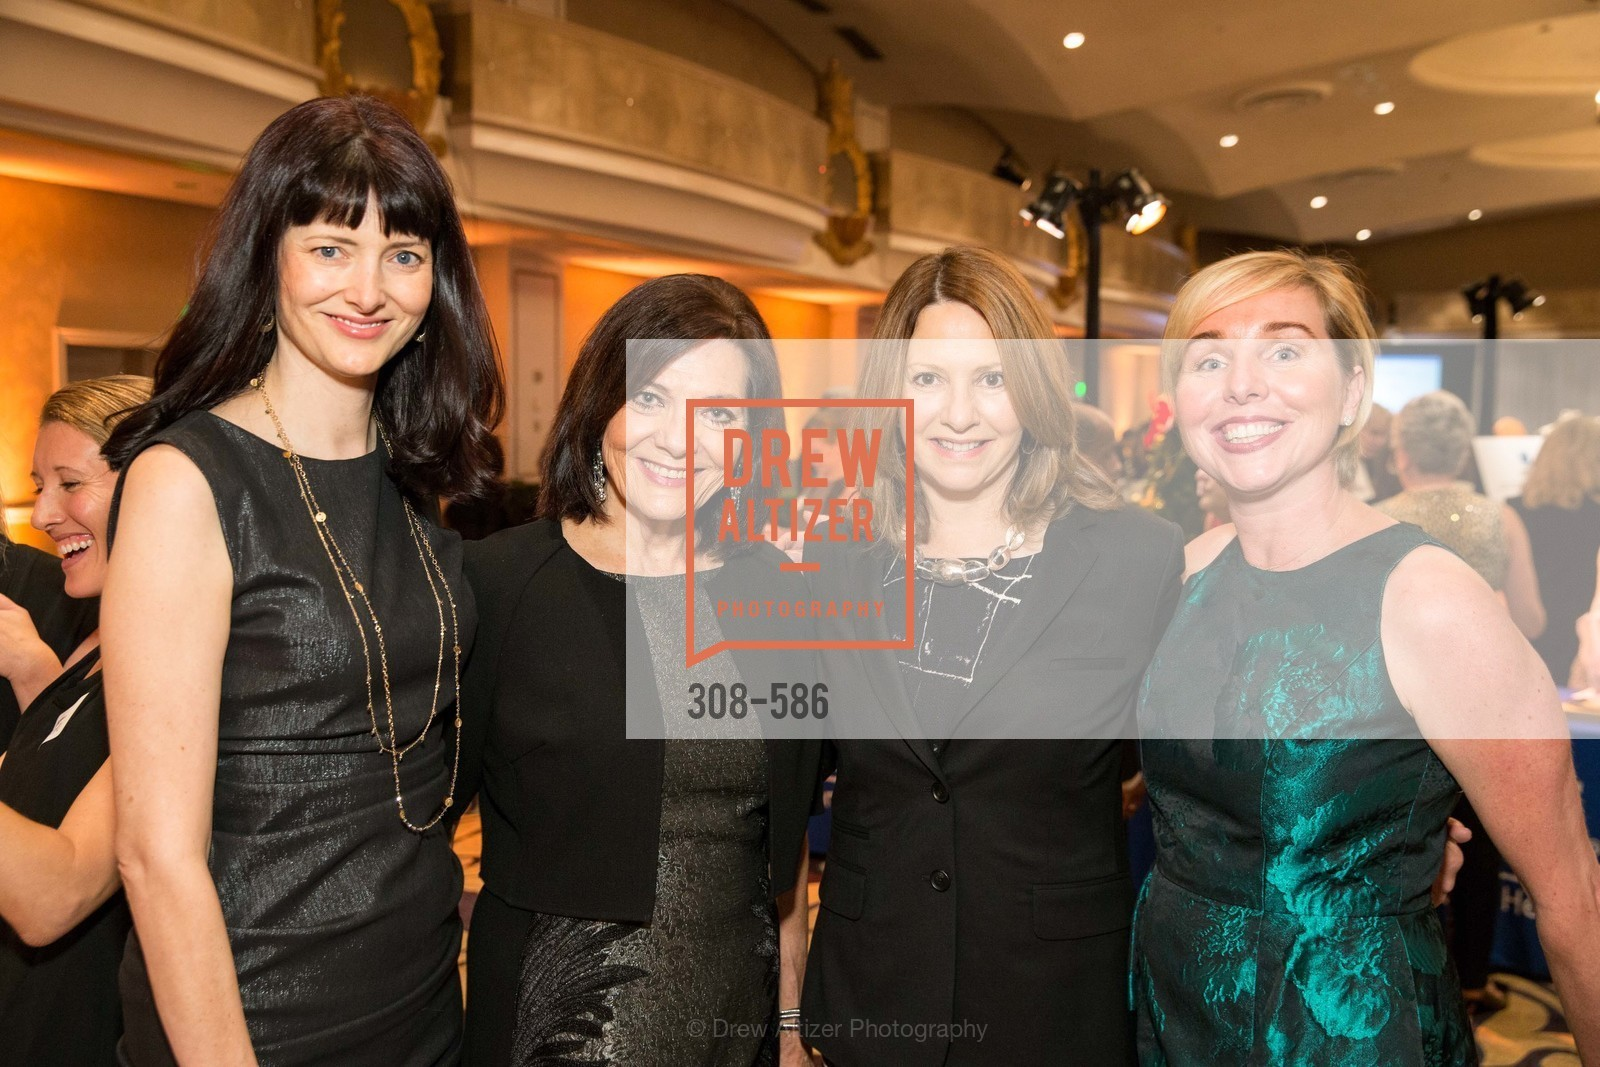 Christina Meakim, Pamela Culp, Elizabeth Rummake, Jill Siefert, 2014 Bay Area ARTHRITIS AUXILLIARY Benefit & Fashion Show, US, October 1st, 2014,Drew Altizer, Drew Altizer Photography, full-service agency, private events, San Francisco photographer, photographer california